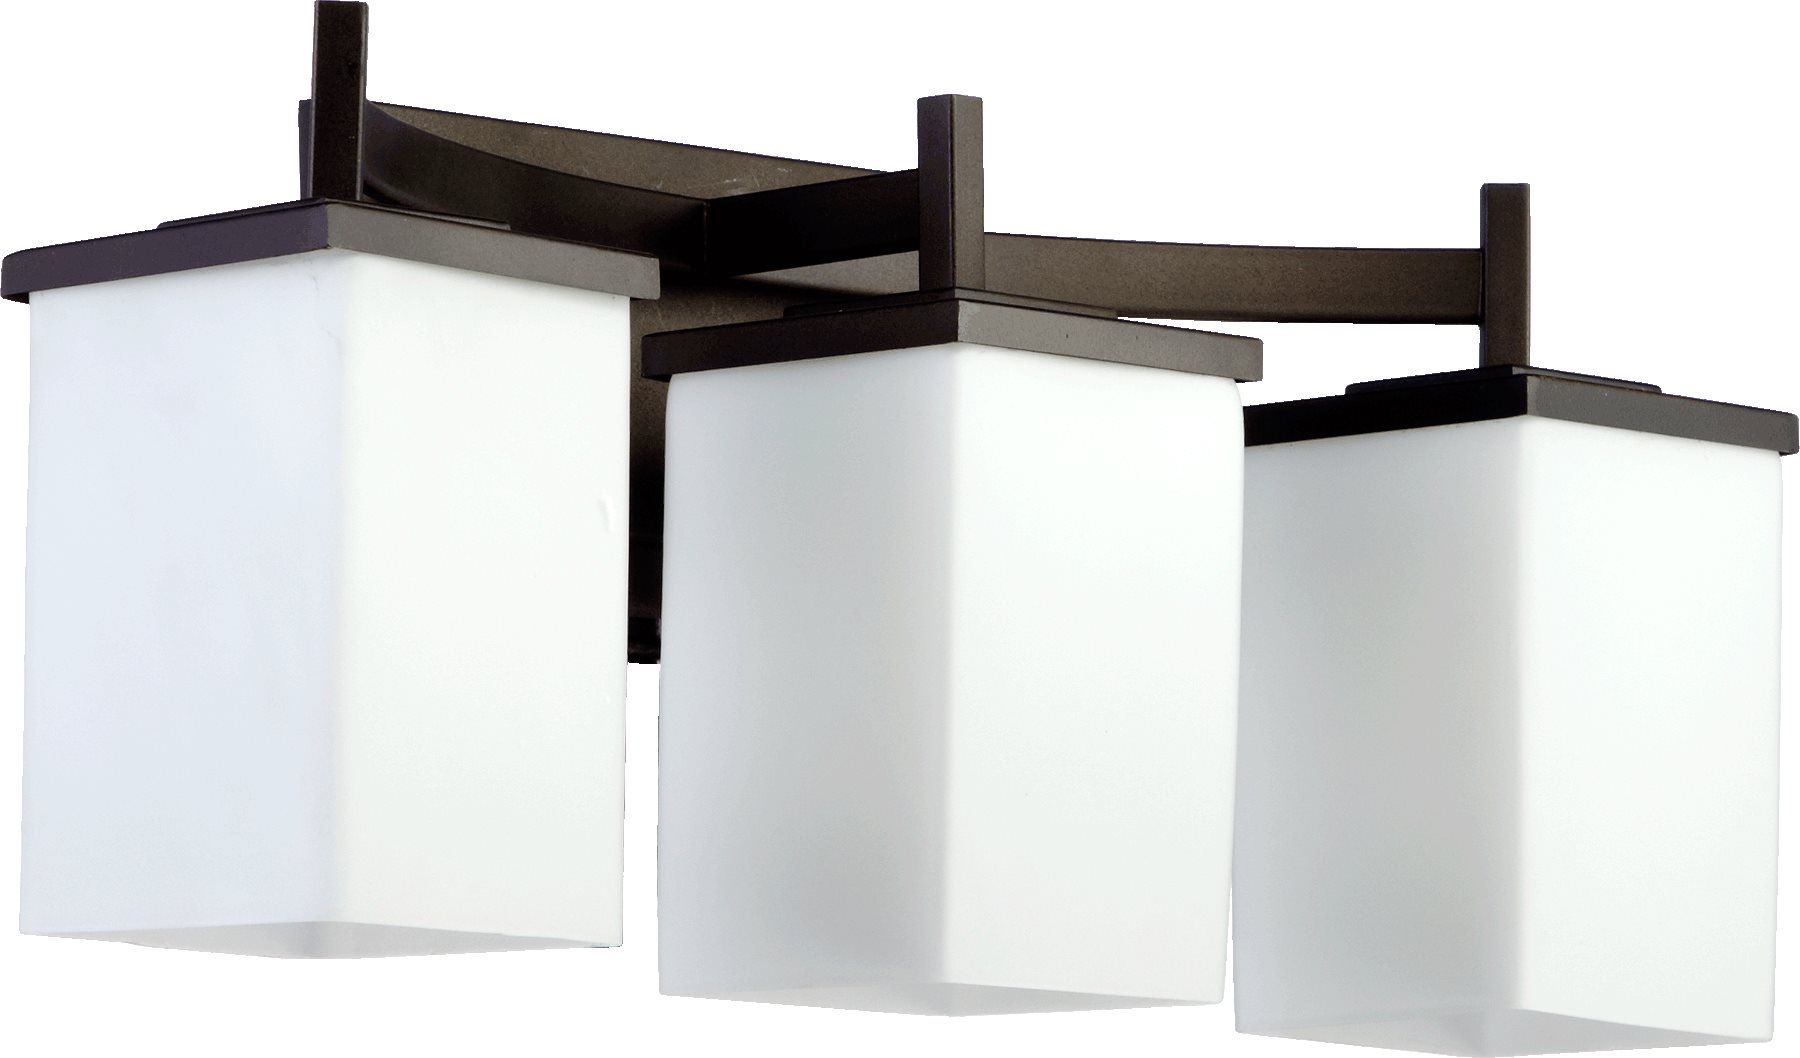 Quorum Lighting 5084-3-86 Delta Modern / Contemporary